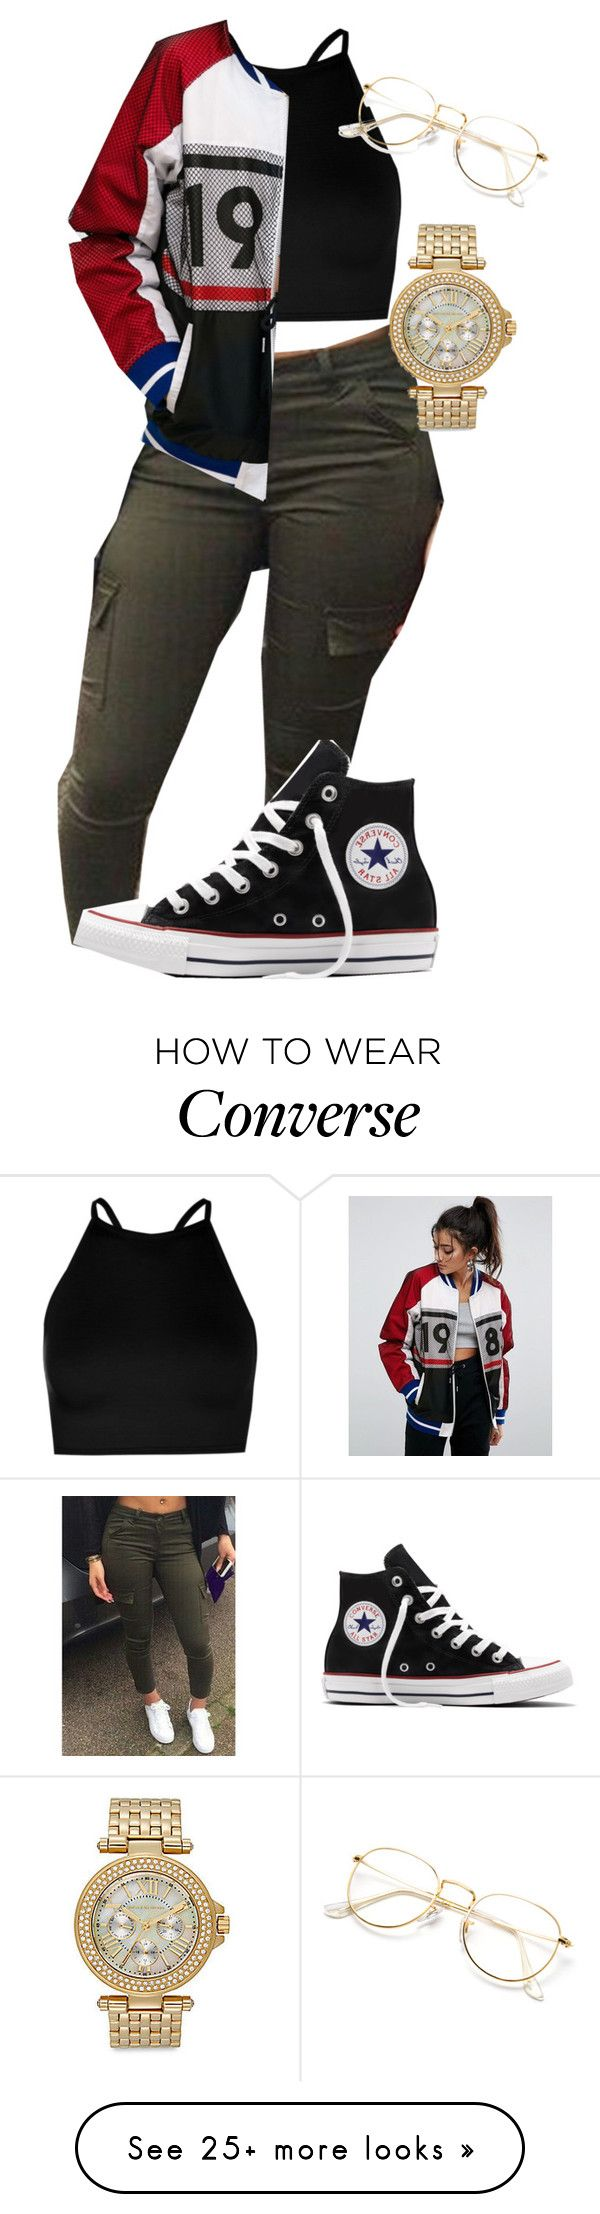 """Untitled #849"" by thisisarisworld on Polyvore featuring Boohoo, ASOS, Converse and Saks Fifth Avenue"